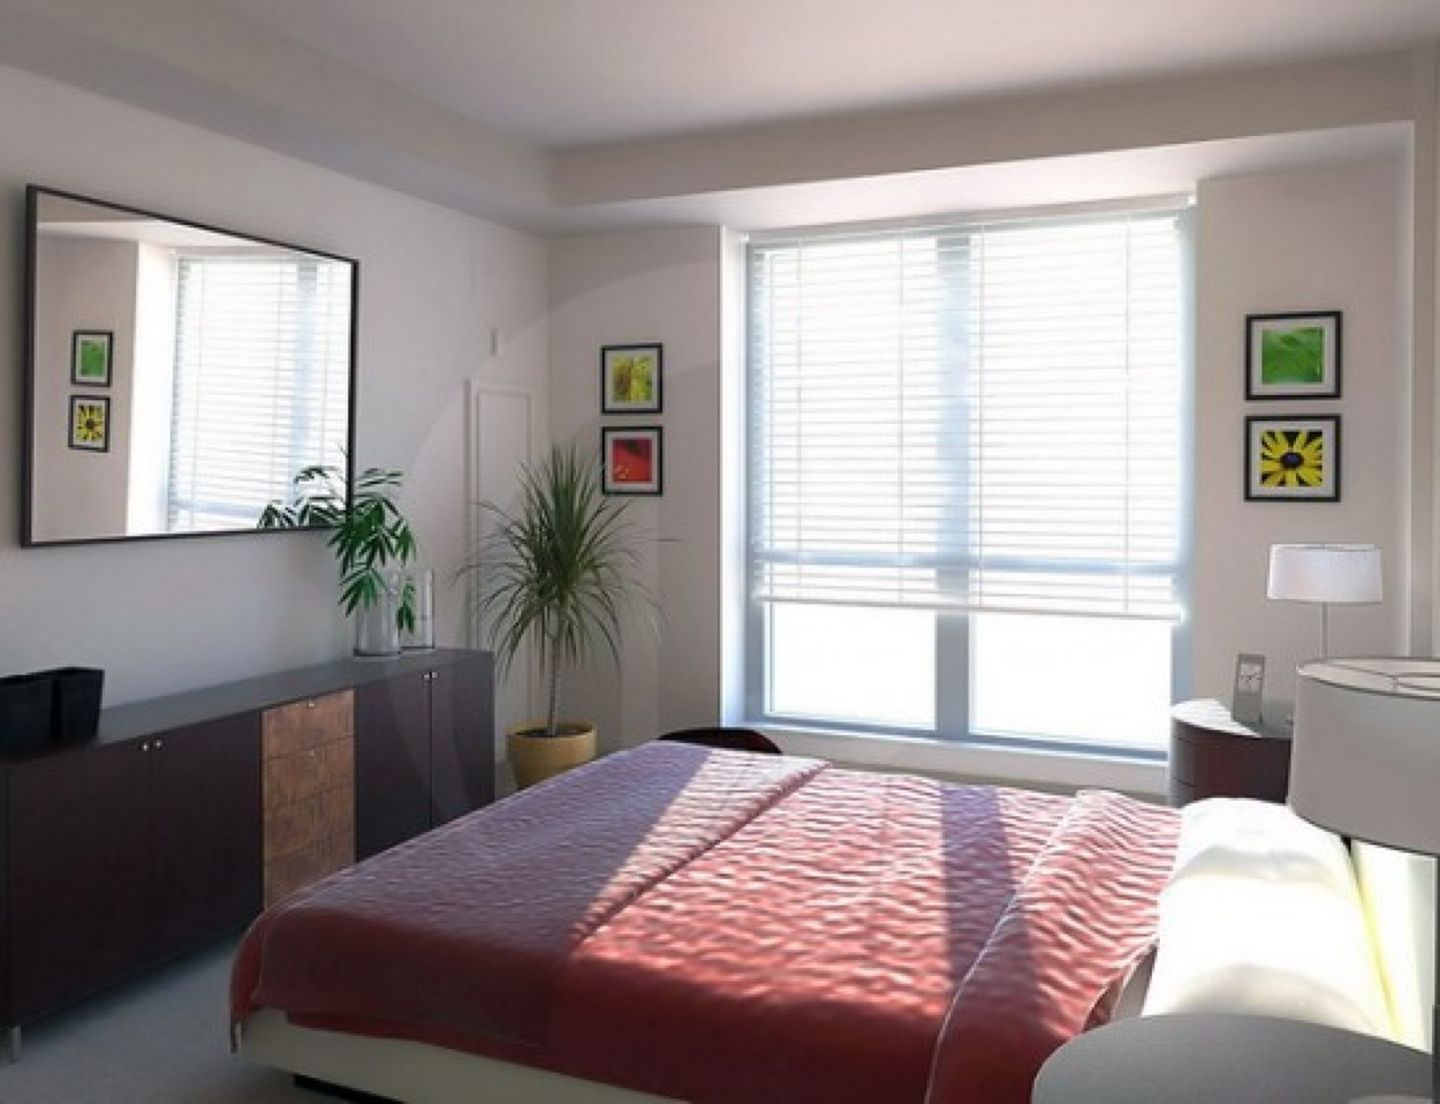 Awesome 20 Minimalist Small Master Bedroom Designs Anda Decorations You Have To See Https Hroomy C Simple Bedroom Design Bedroom Layouts Small Bedroom Decor Simple bedroom decoration view